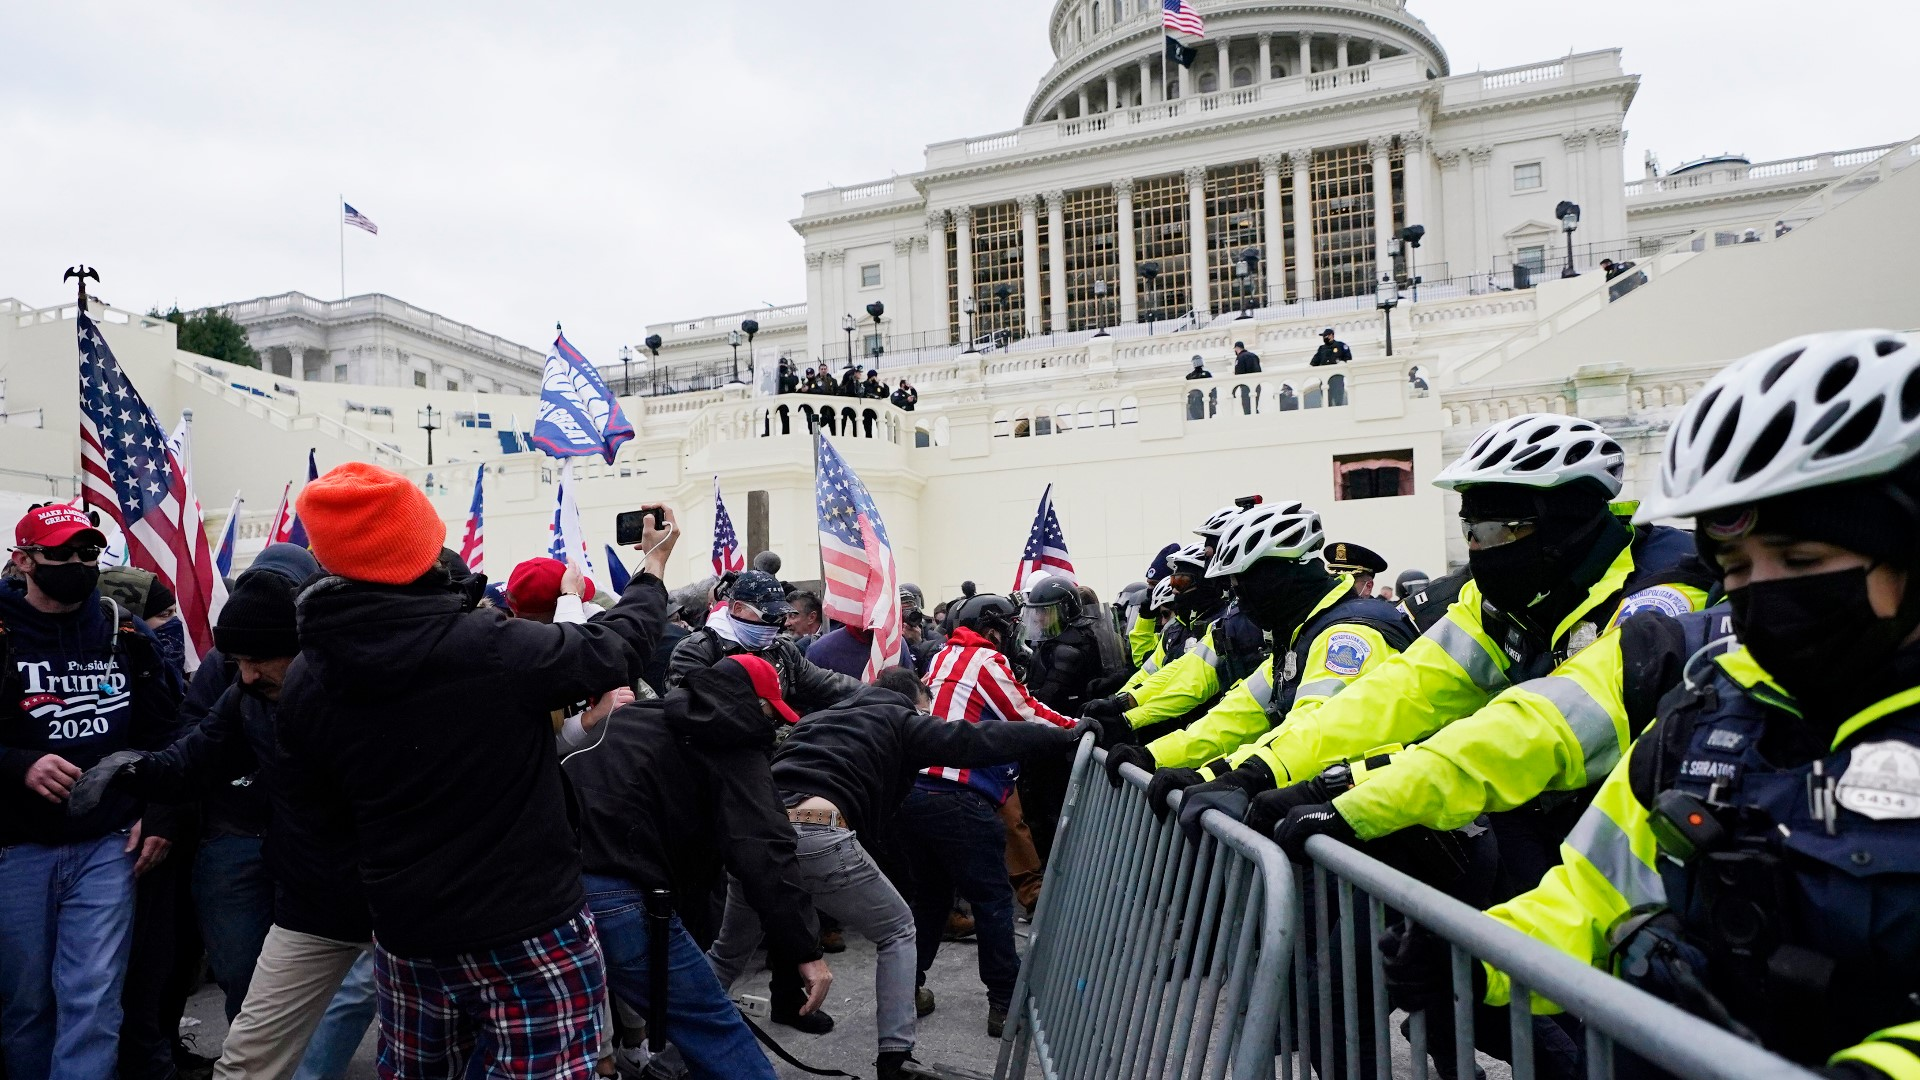 Trump tells supporters to go home after they clash with police, storm US  Capitol | whas11.com